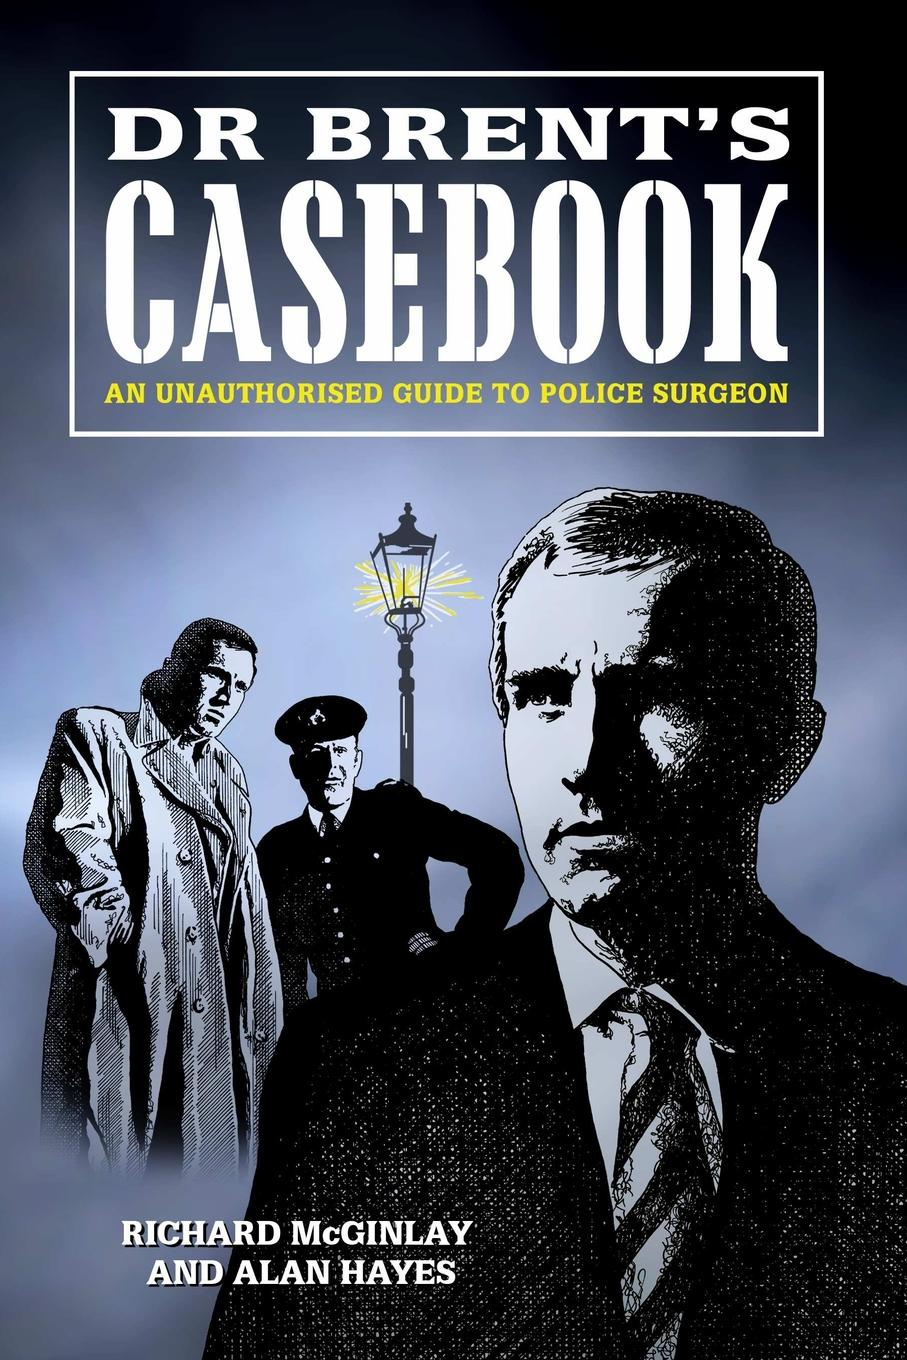 Alan Hayes, Richard McGinlay Dr Brent.s Casebook - An Unauthorised Guide to Police Surgeon heidi hormel the surgeon and the cowgirl